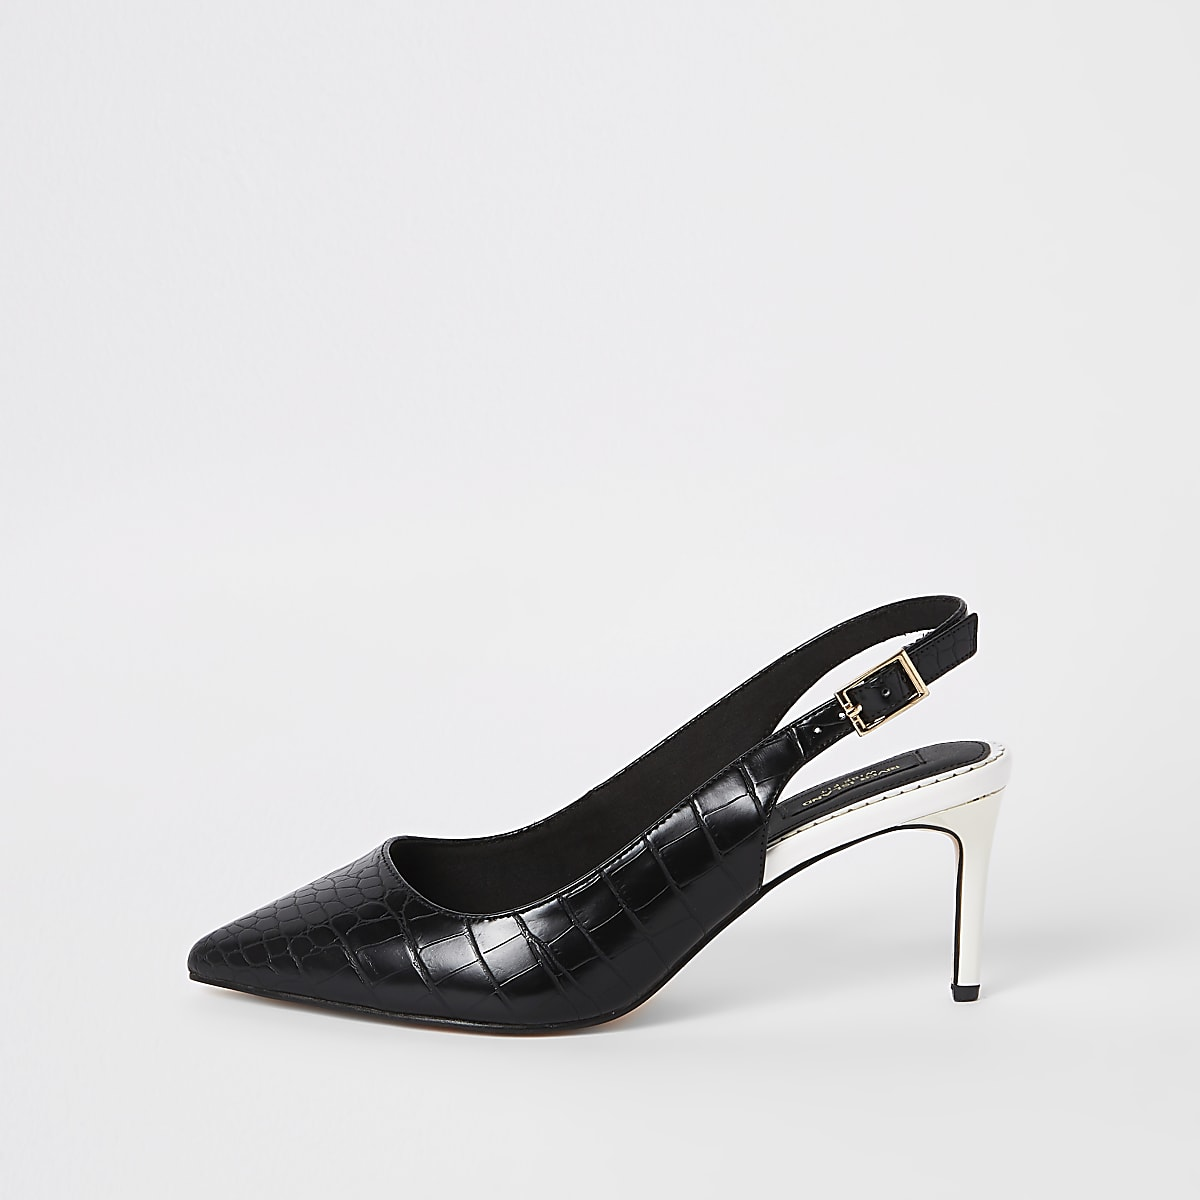 Black croc wide fit slingback pumps